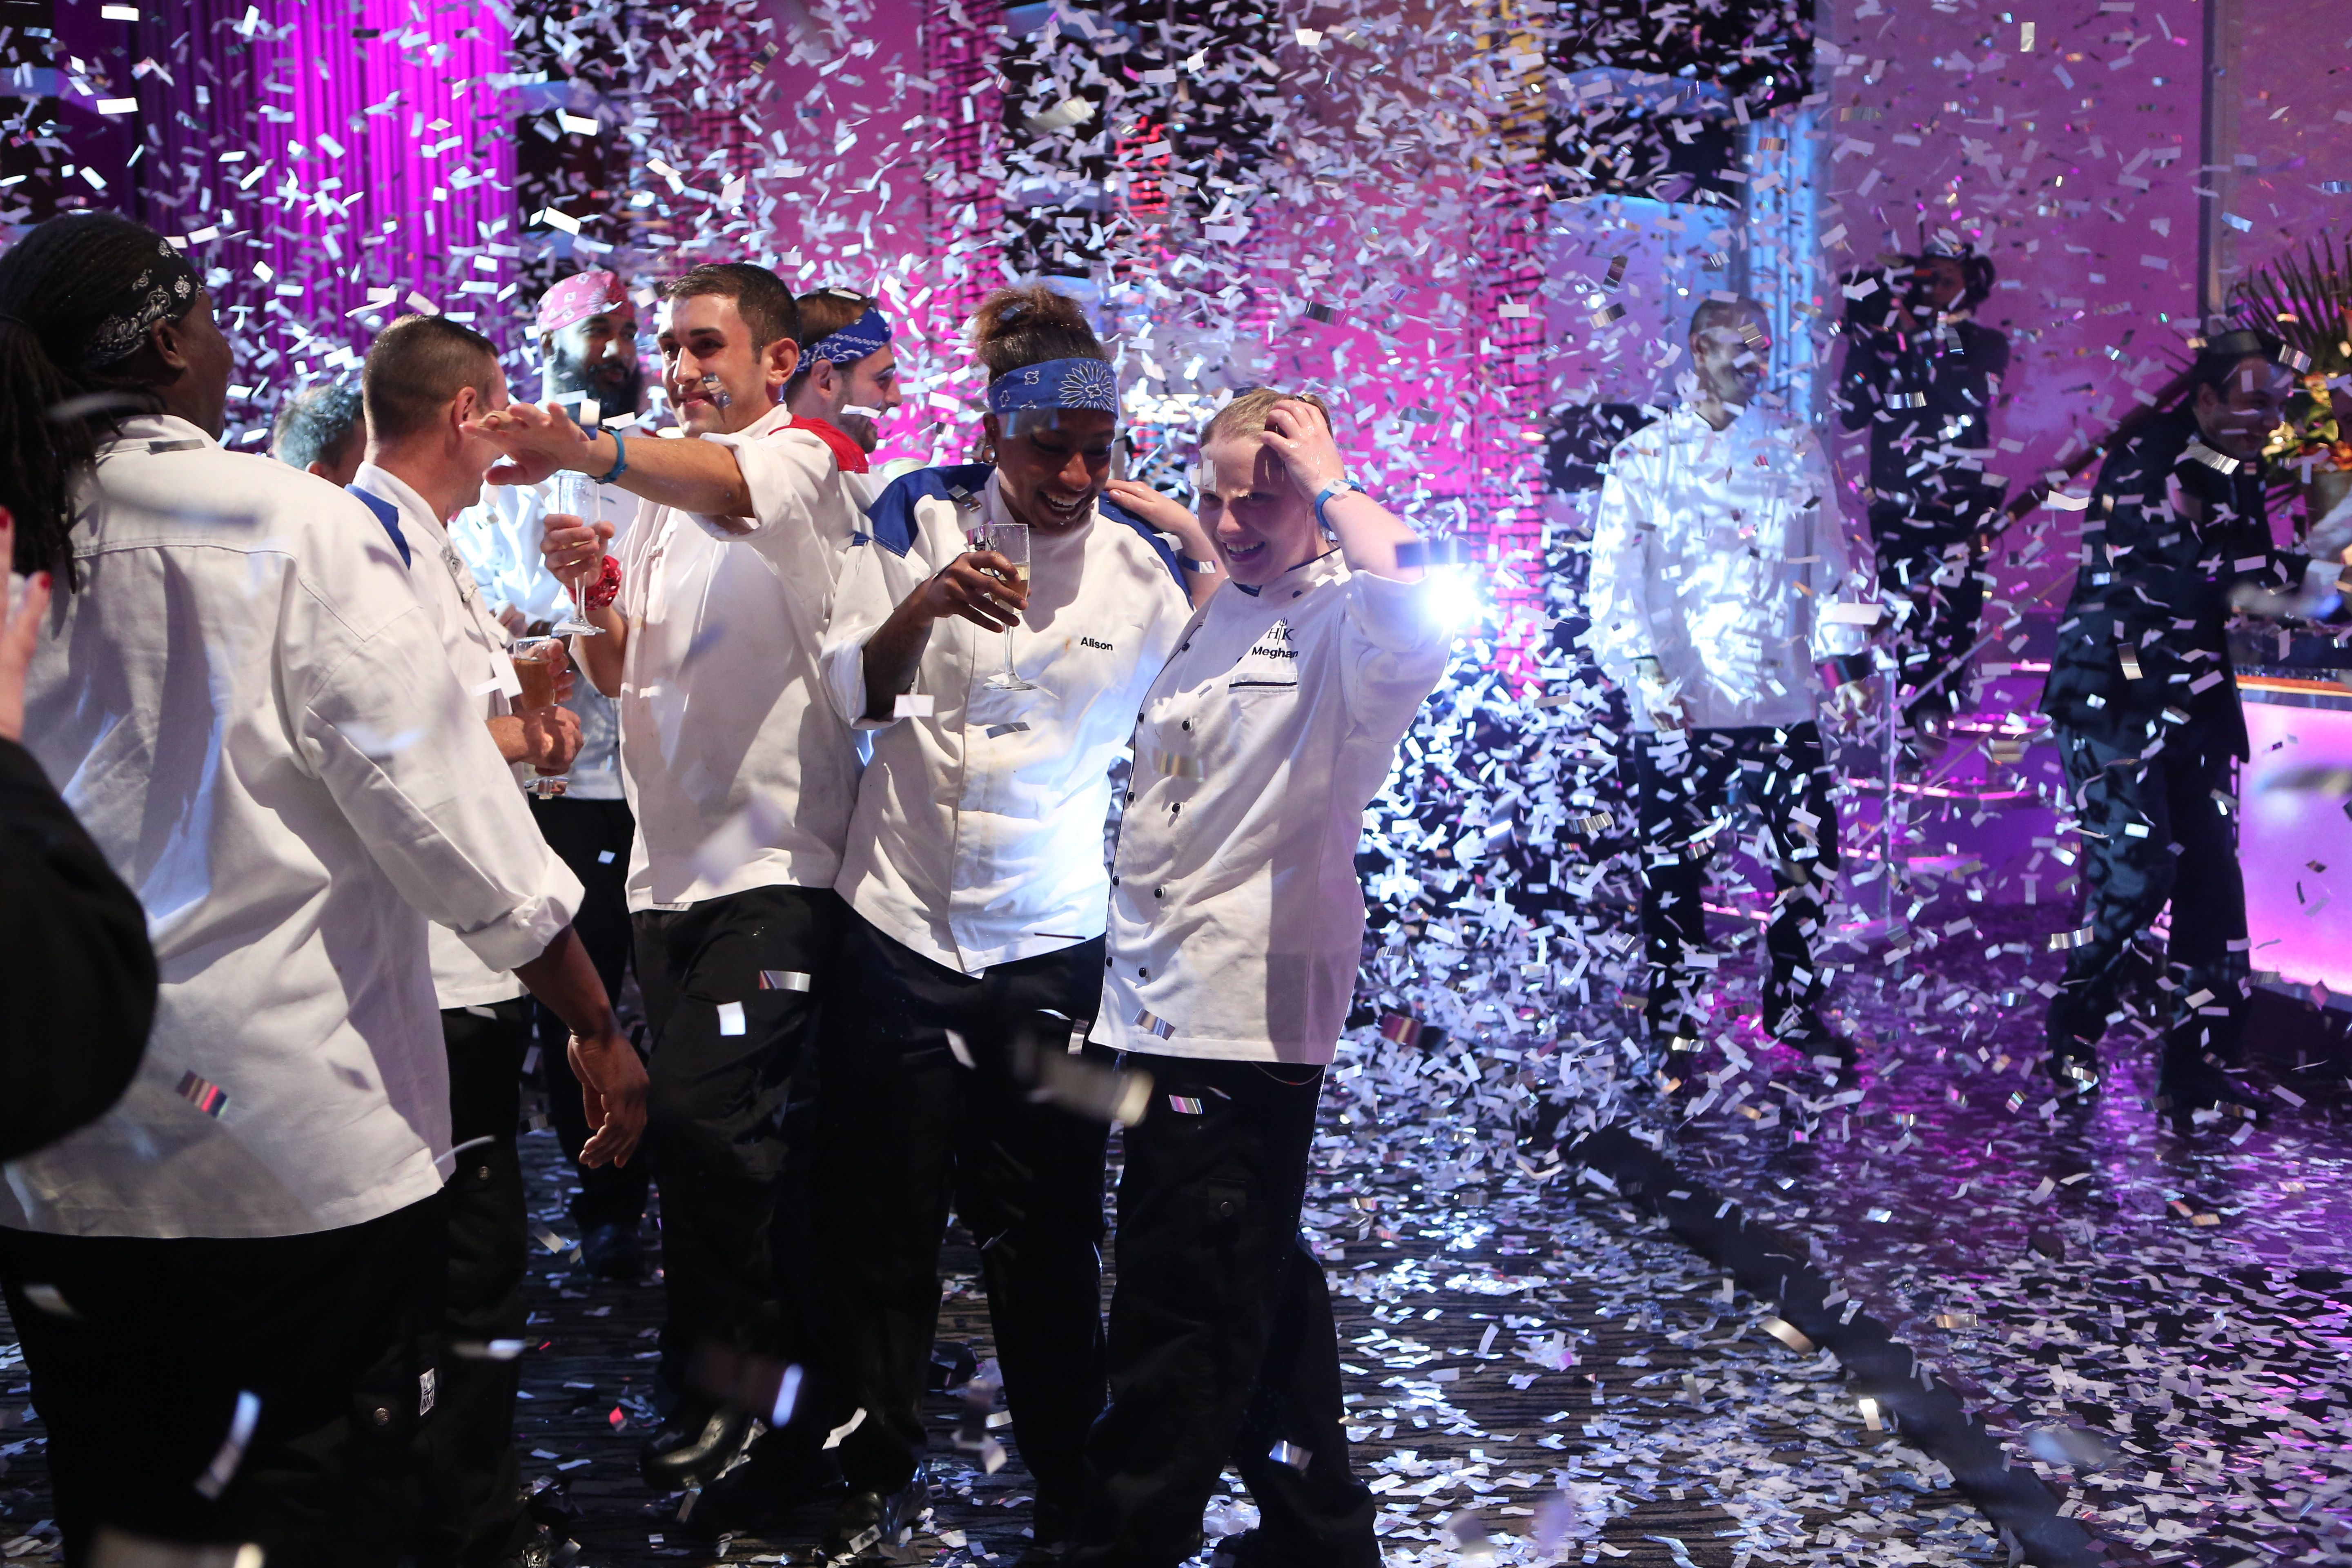 Finali tal-Istaġun 14 'Hell's Kitchen': All Over But the Fryin